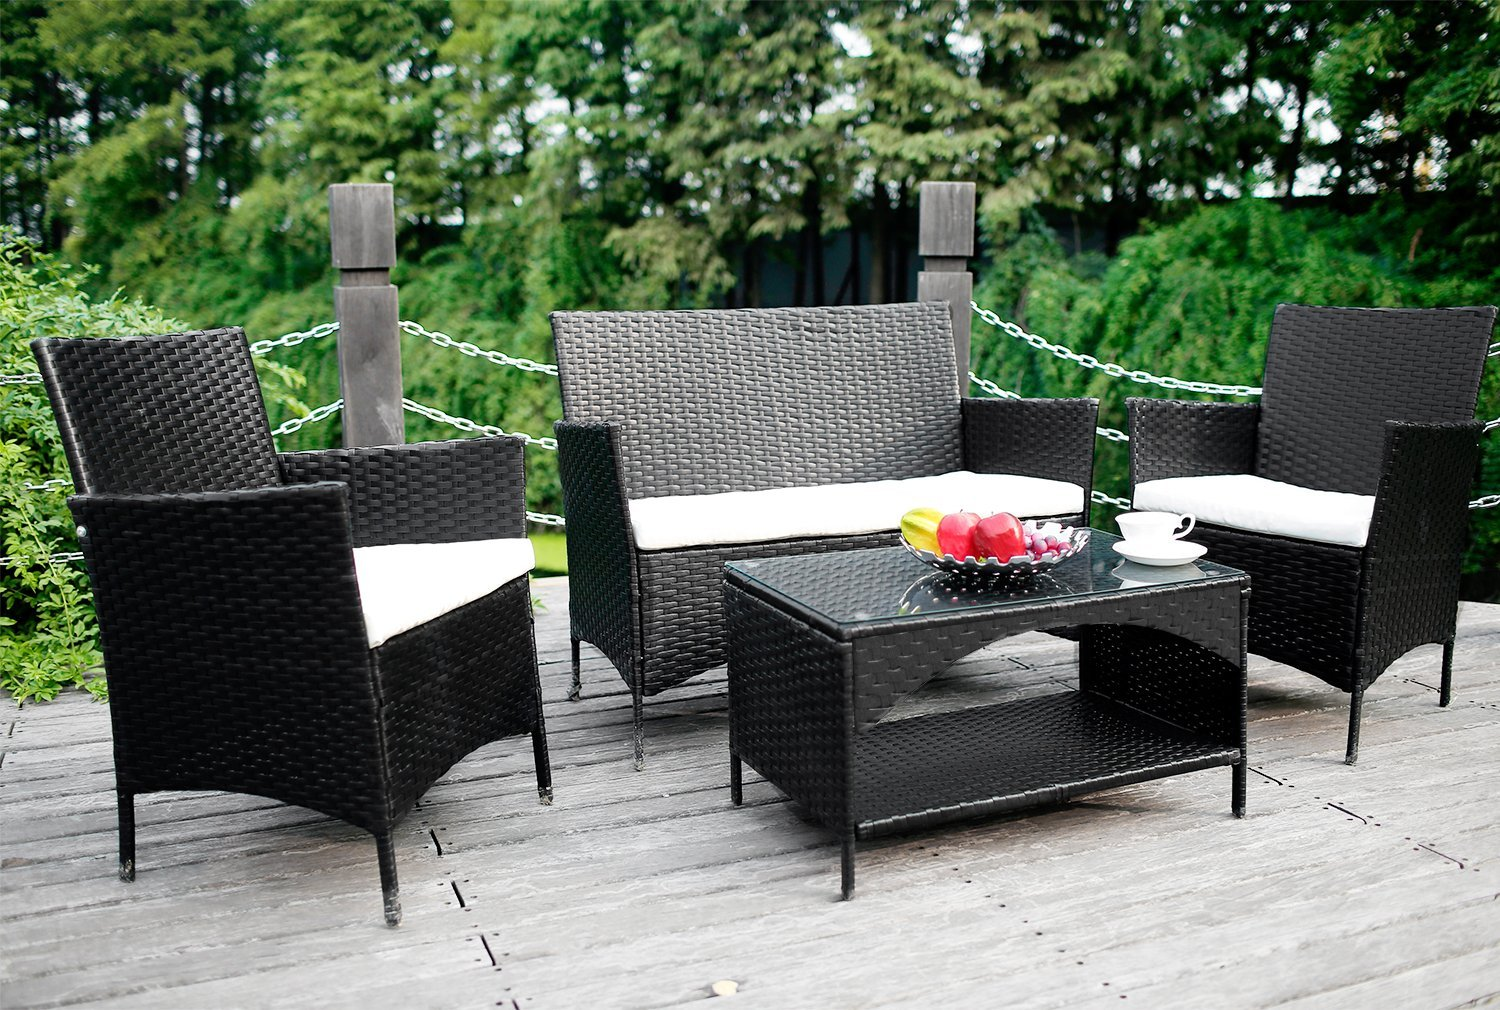 2 Person Rattan Love Sofa Set Review Merax 4 Piece Outdoor Rattan Patio Furniture Set